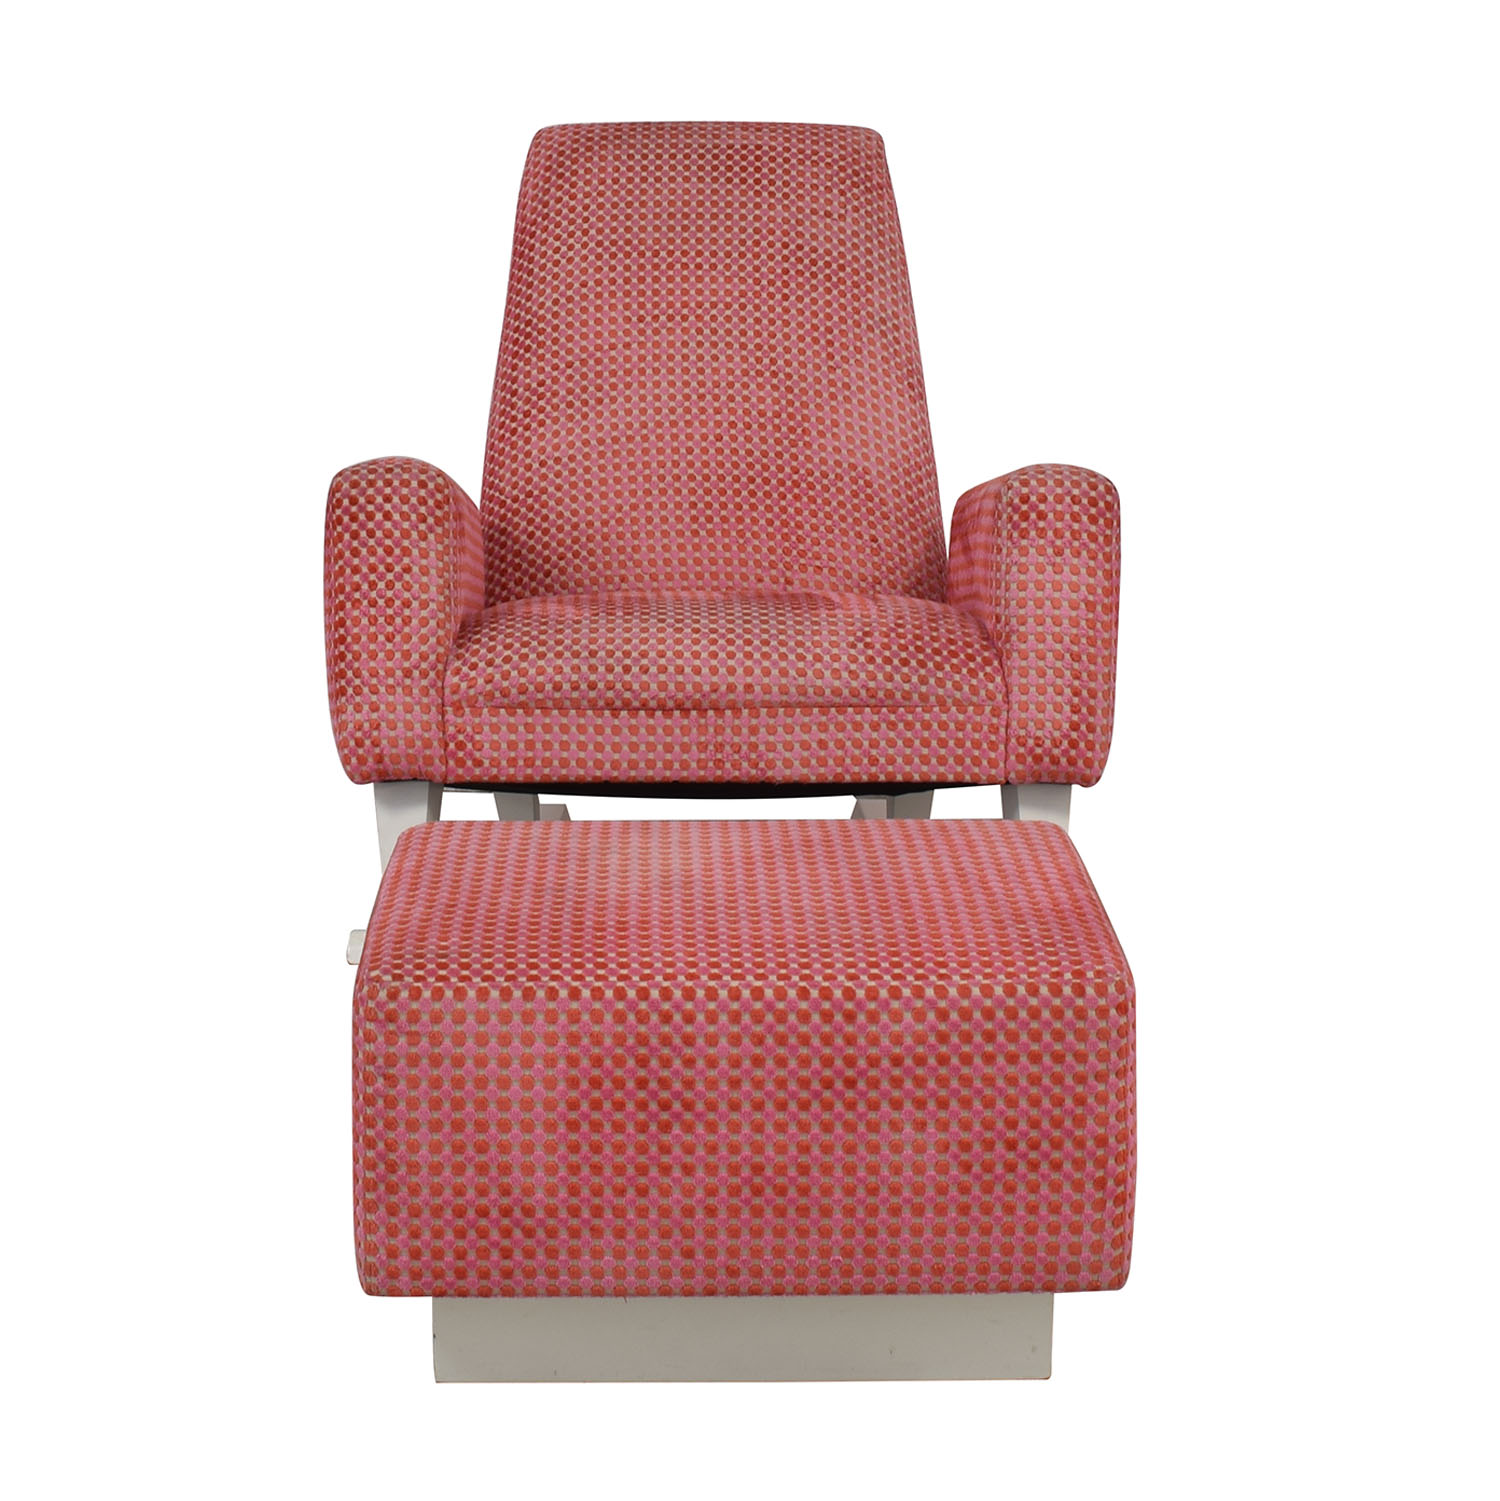 shop Furniture Masters Pink Chair with Ottoman Furniture Masters